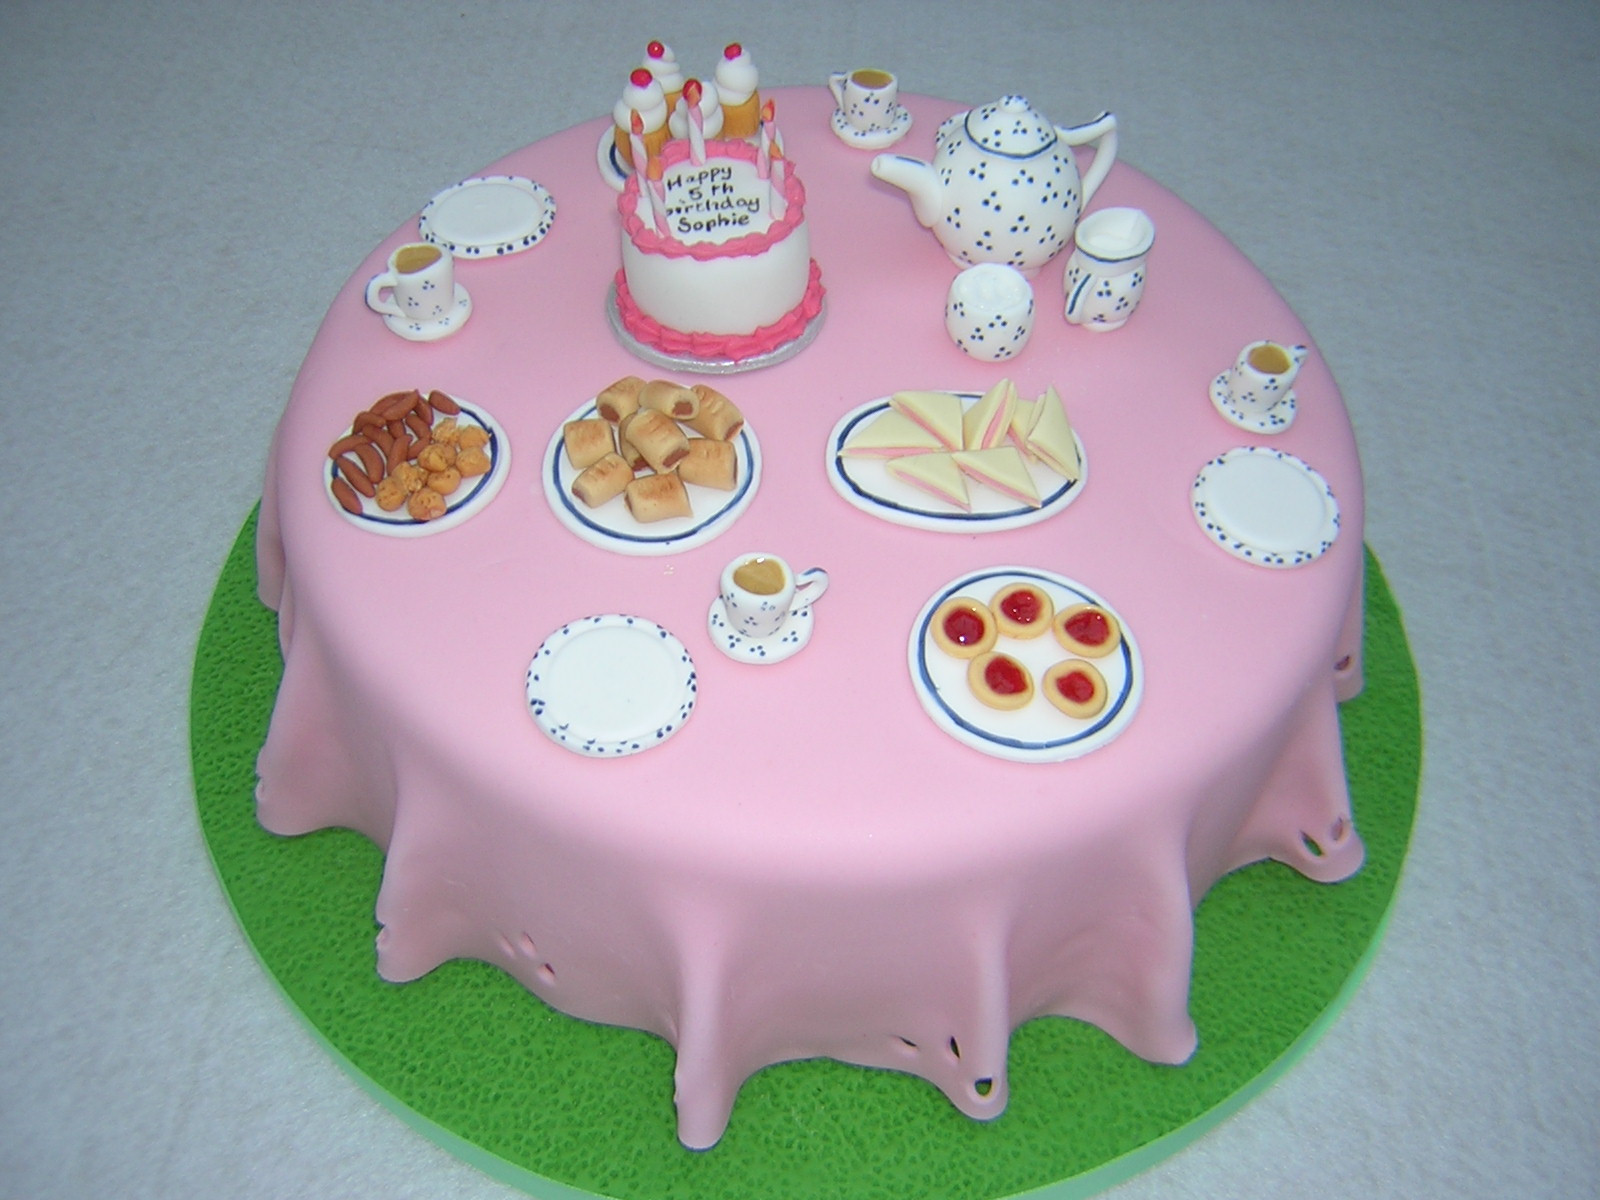 Tea Party Birthday Cake Ideas  Learn How to Host a Tea Party Birthday for Your Kids and